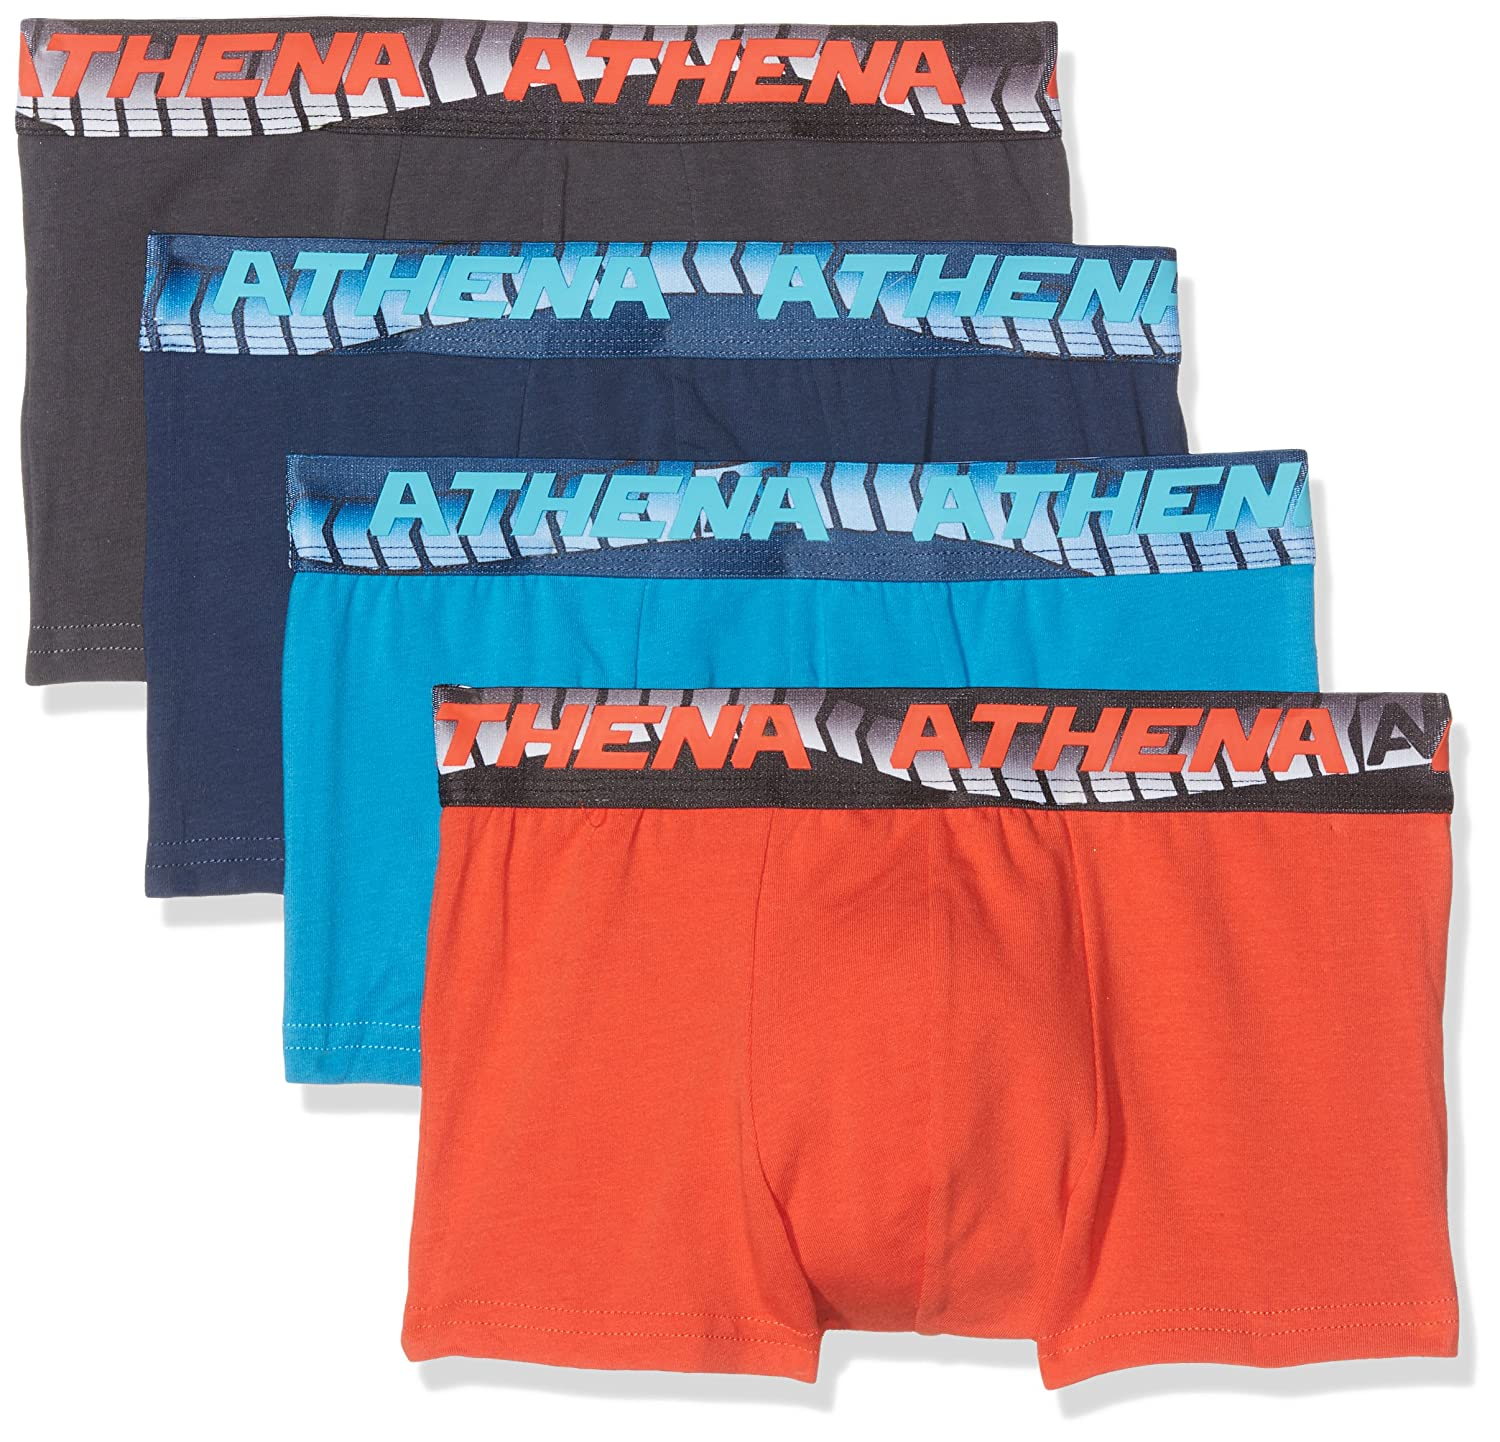 Athena Gum Boy Short Pack of 4